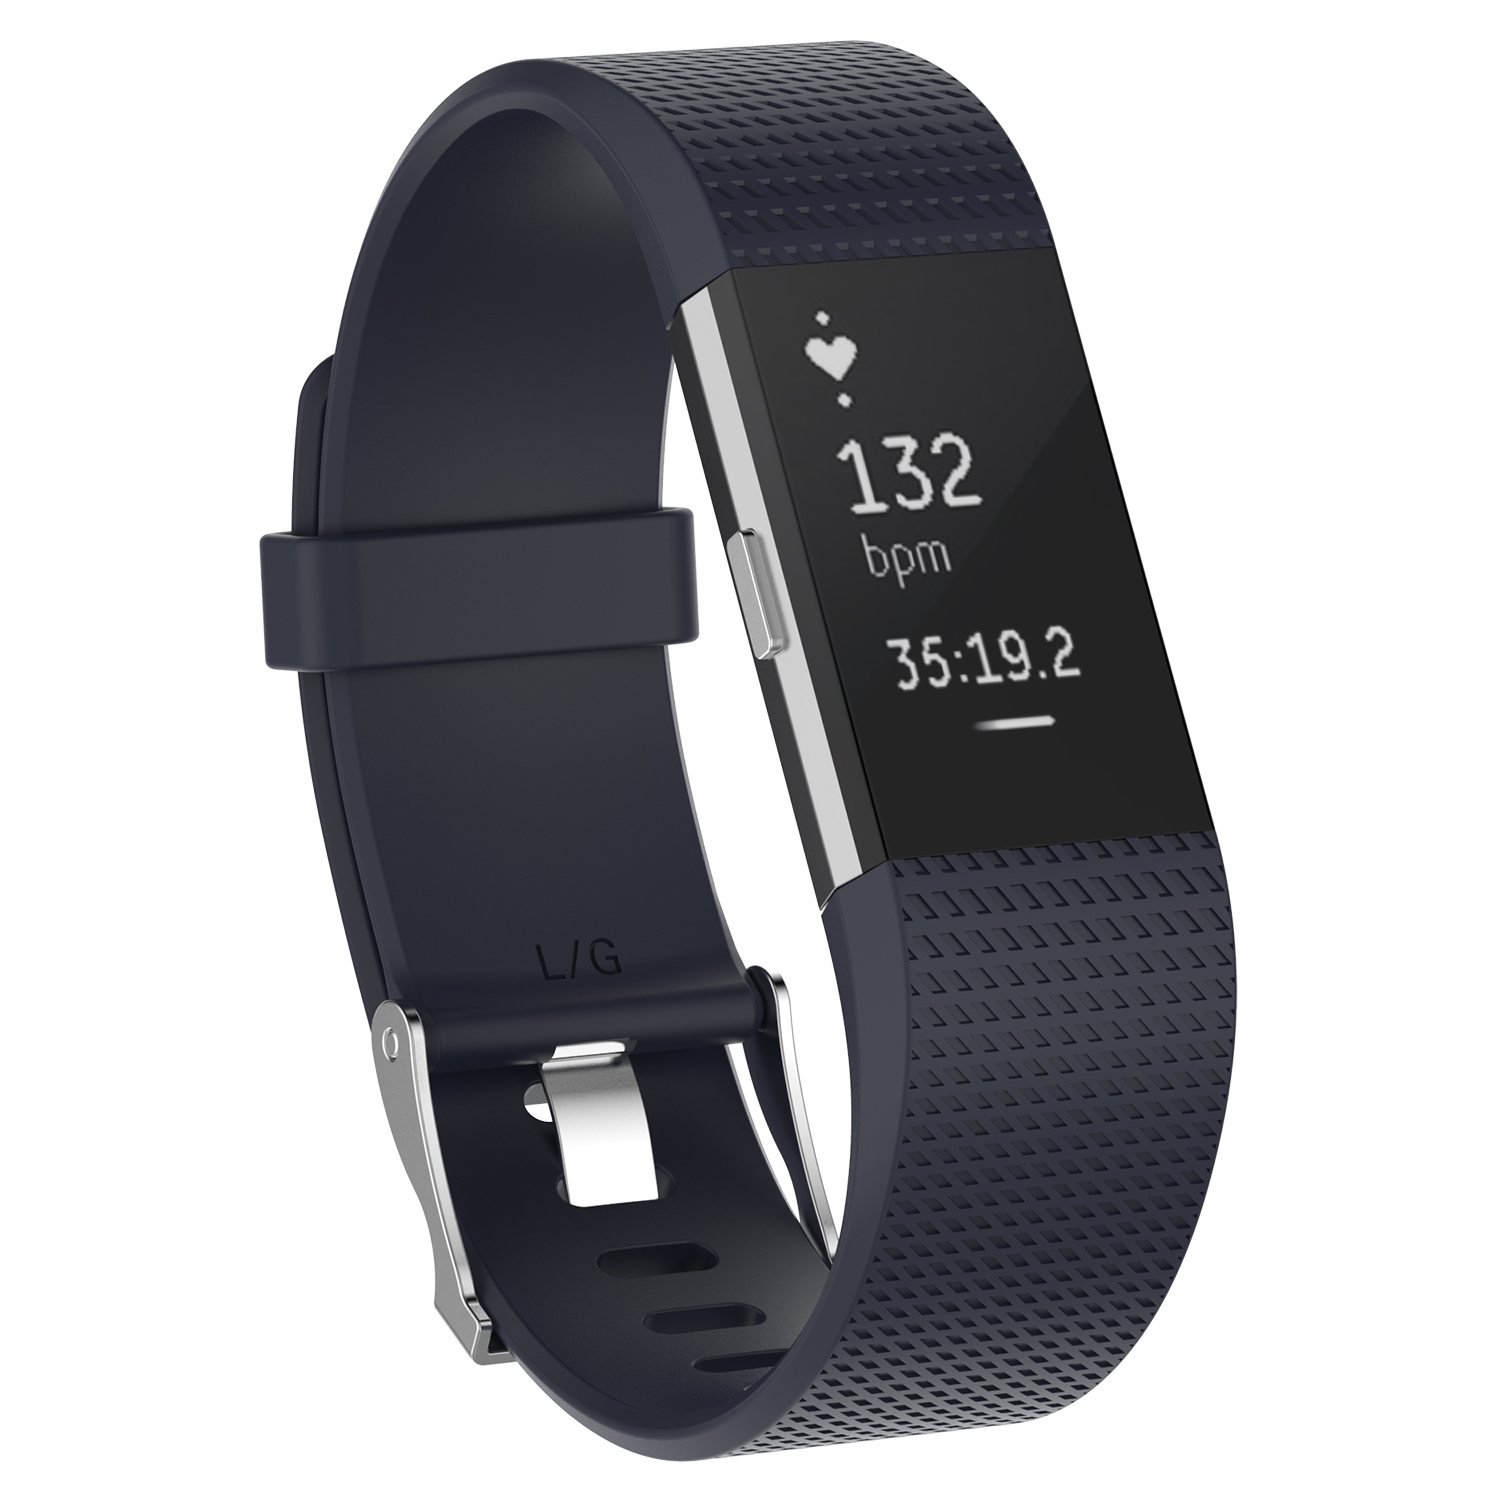 Replacement-Silicone-Wristband-Watch-Strap-Bands-Bracelet-For-Fitbit-Charge-2 thumbnail 27